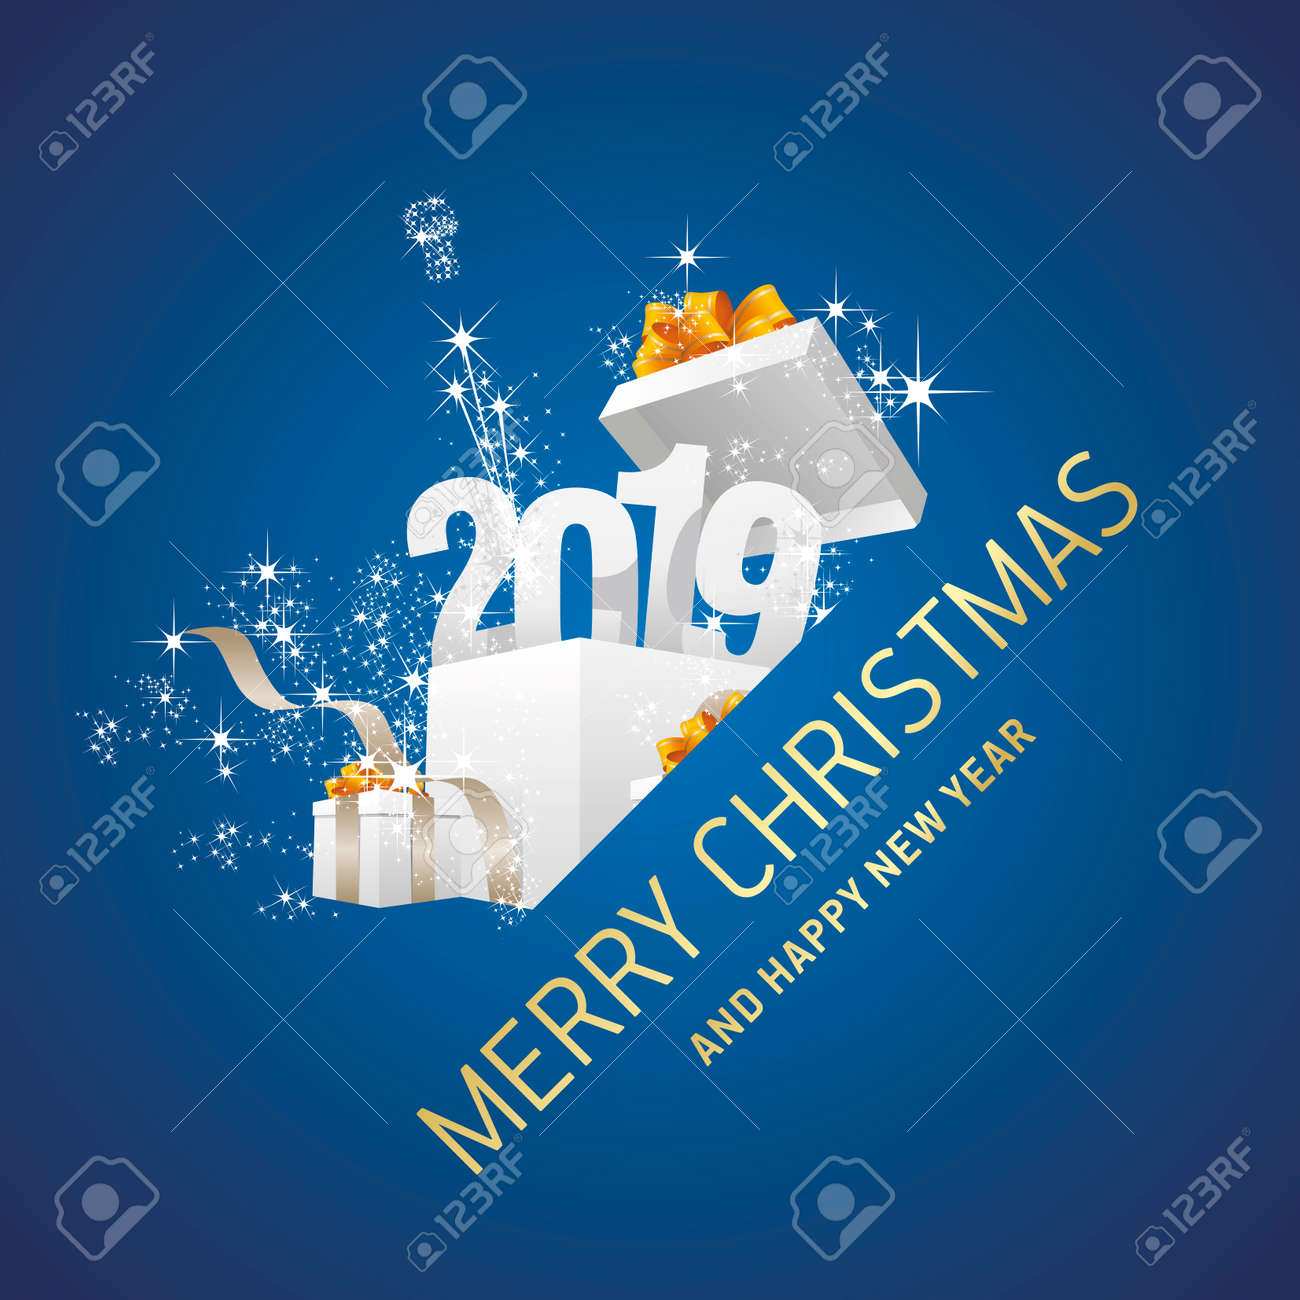 merry christmas and happy new year 2019 gift box firework blue greeting card stock vector